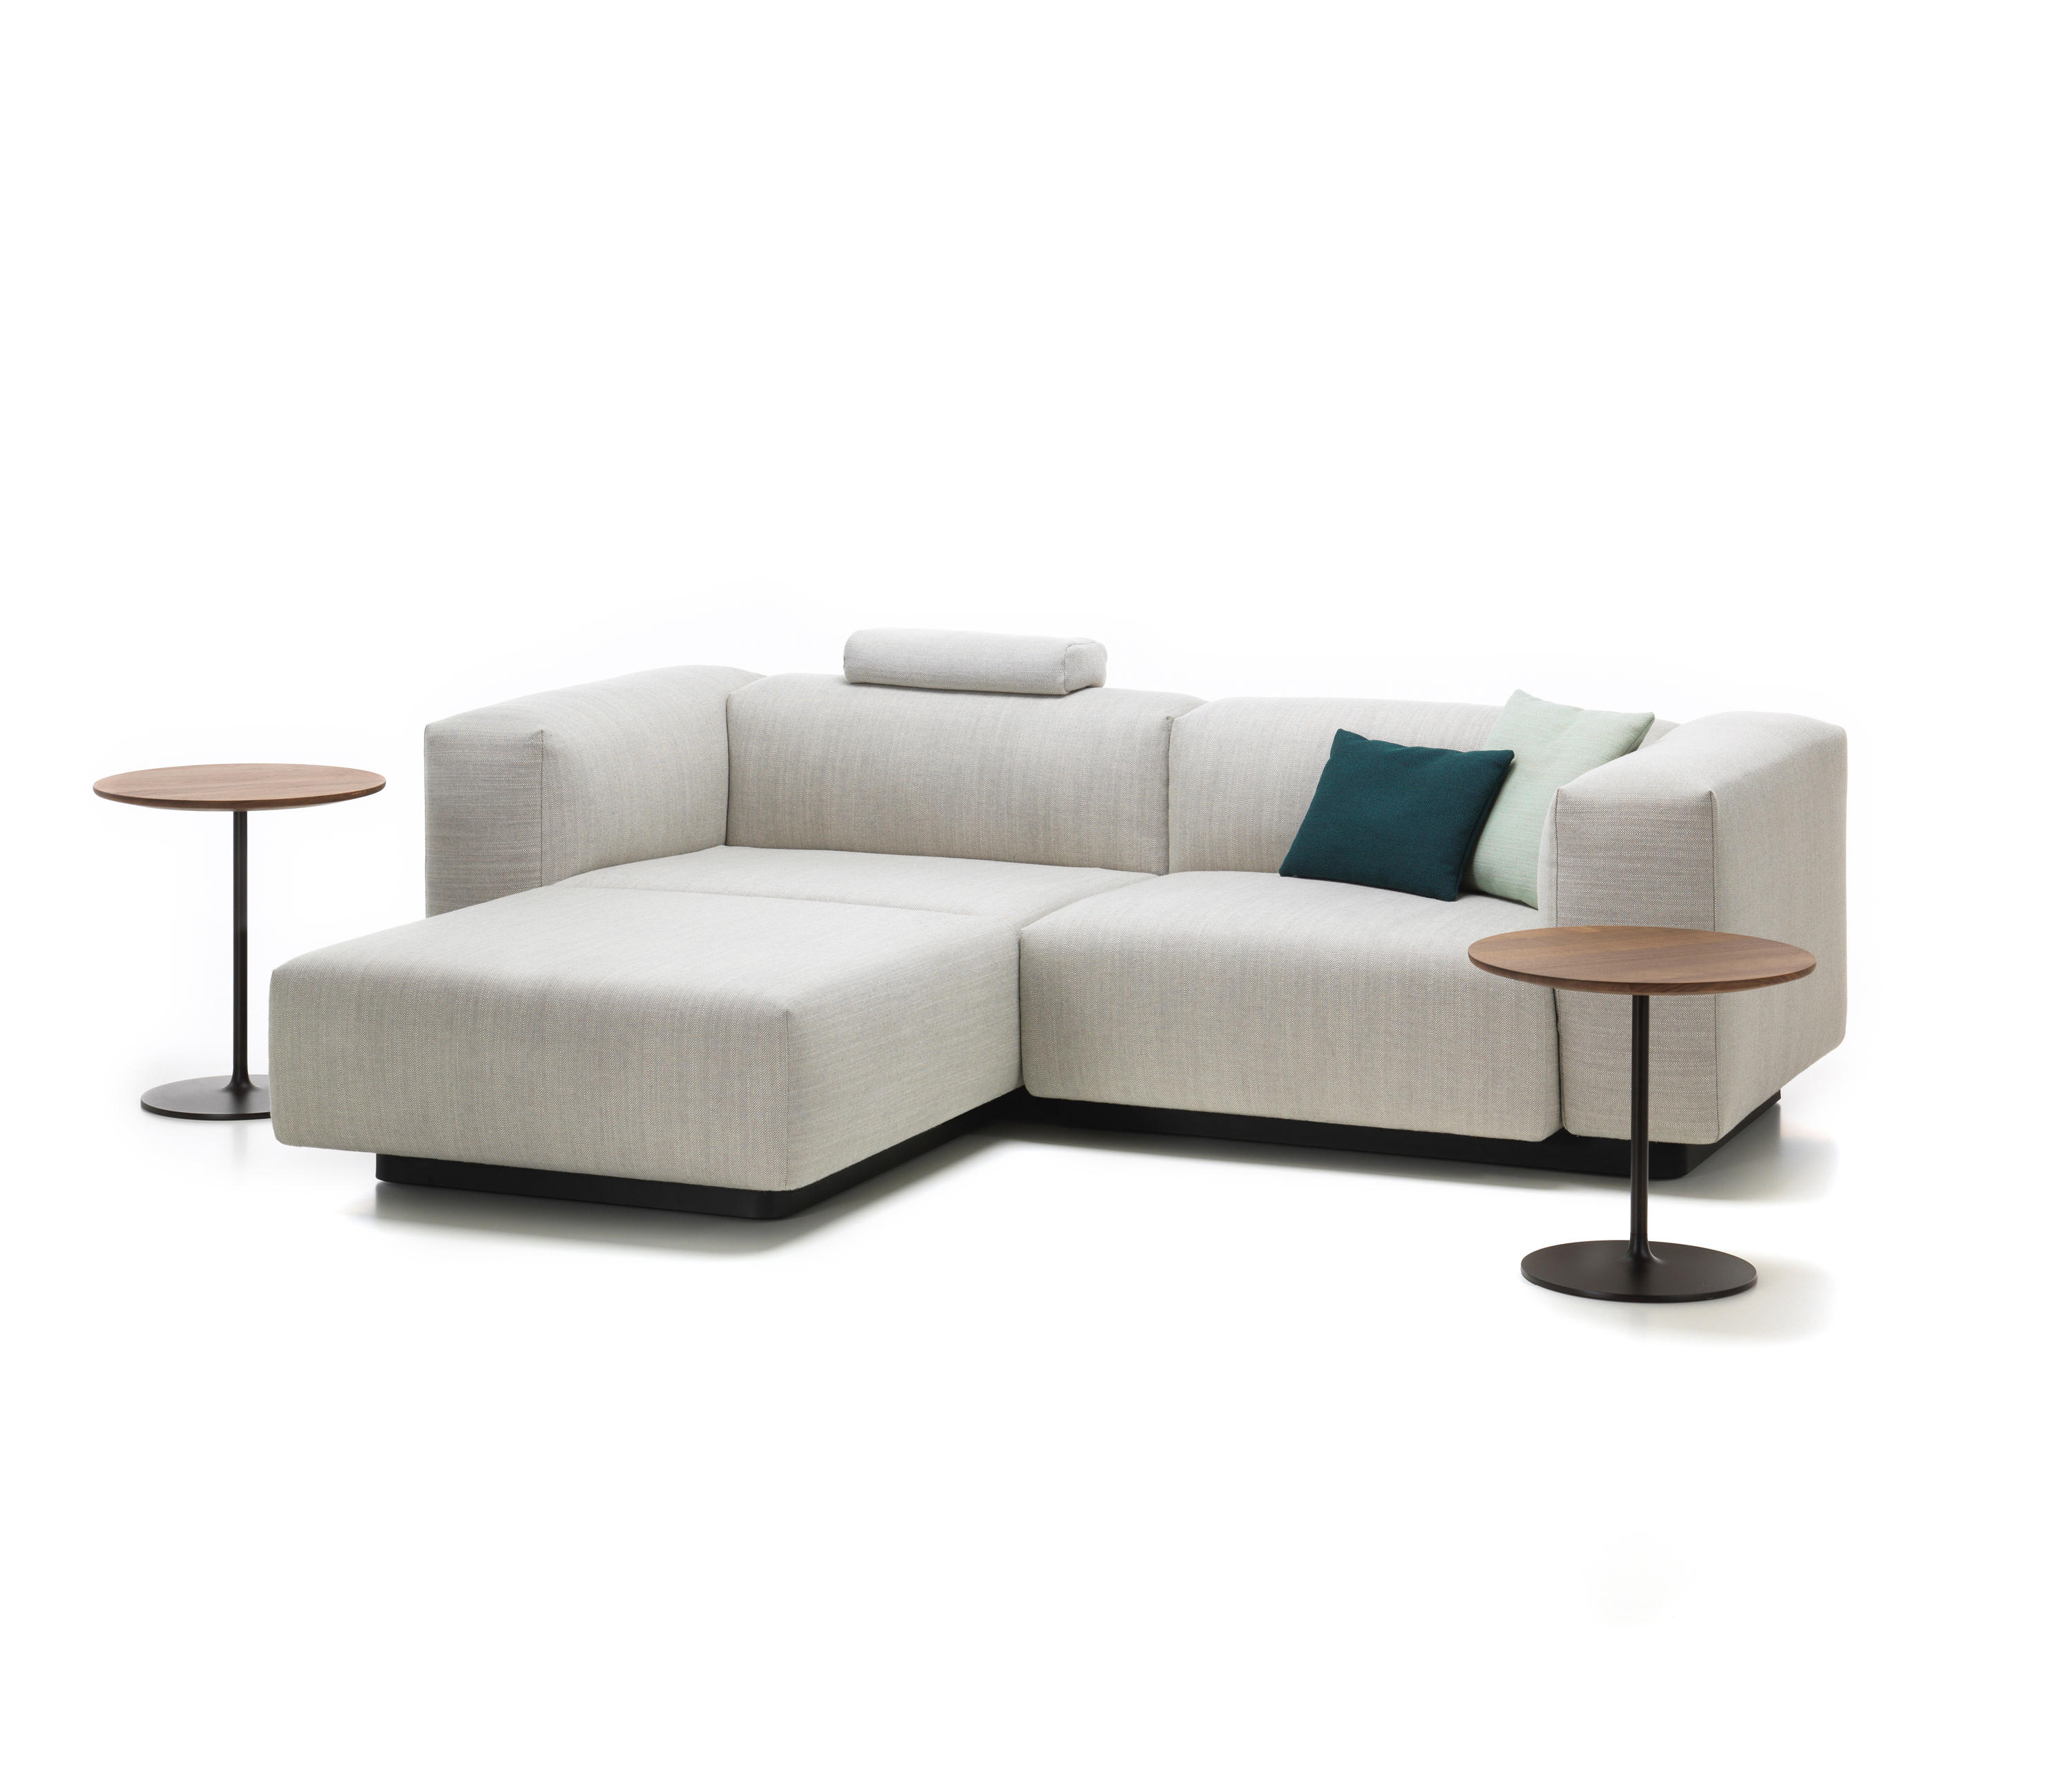 2 seater sofa with chaise sofa fascinating 2 seater chaise for 2 seater lounge with chaise